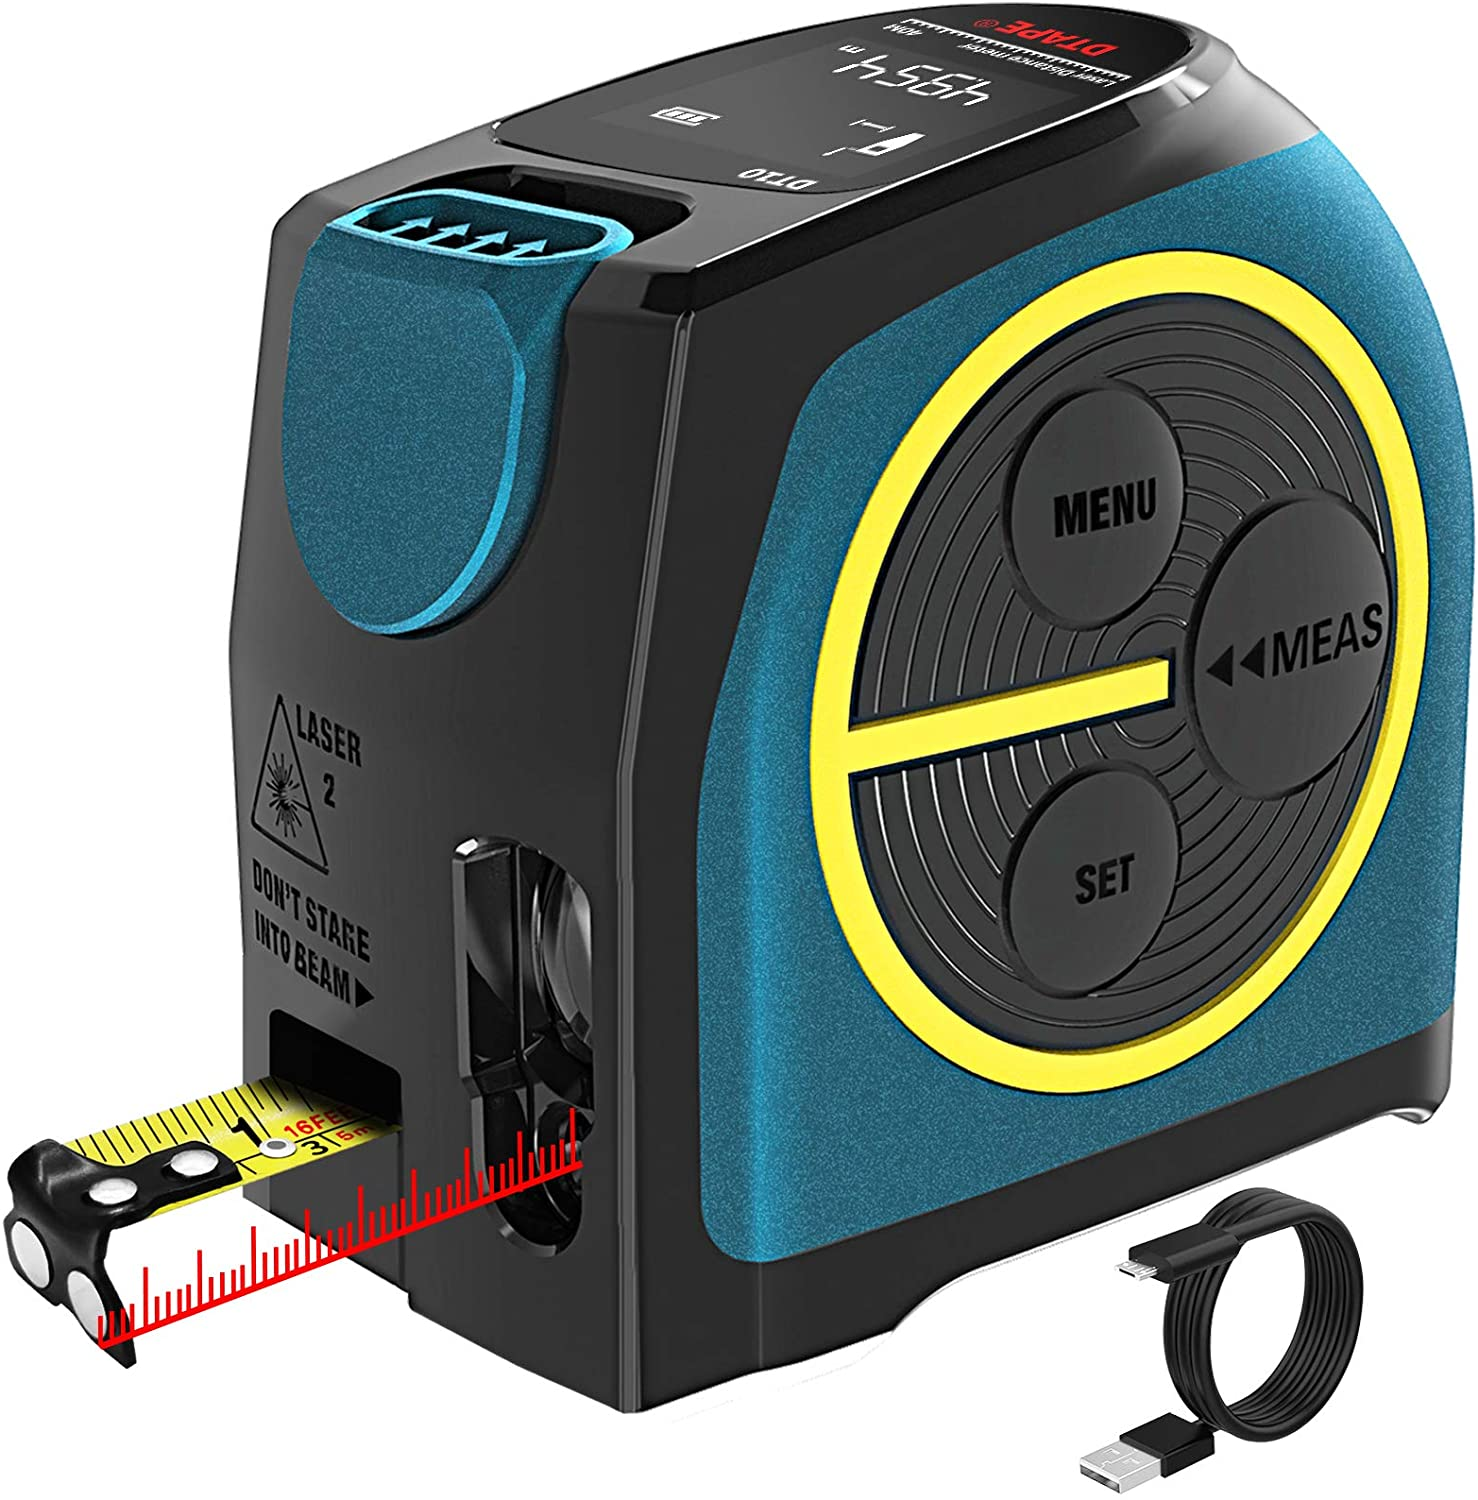 2 in 1 Laser Measuring Tape LCD Display with Li Battery Power 131Ft and 16Ft